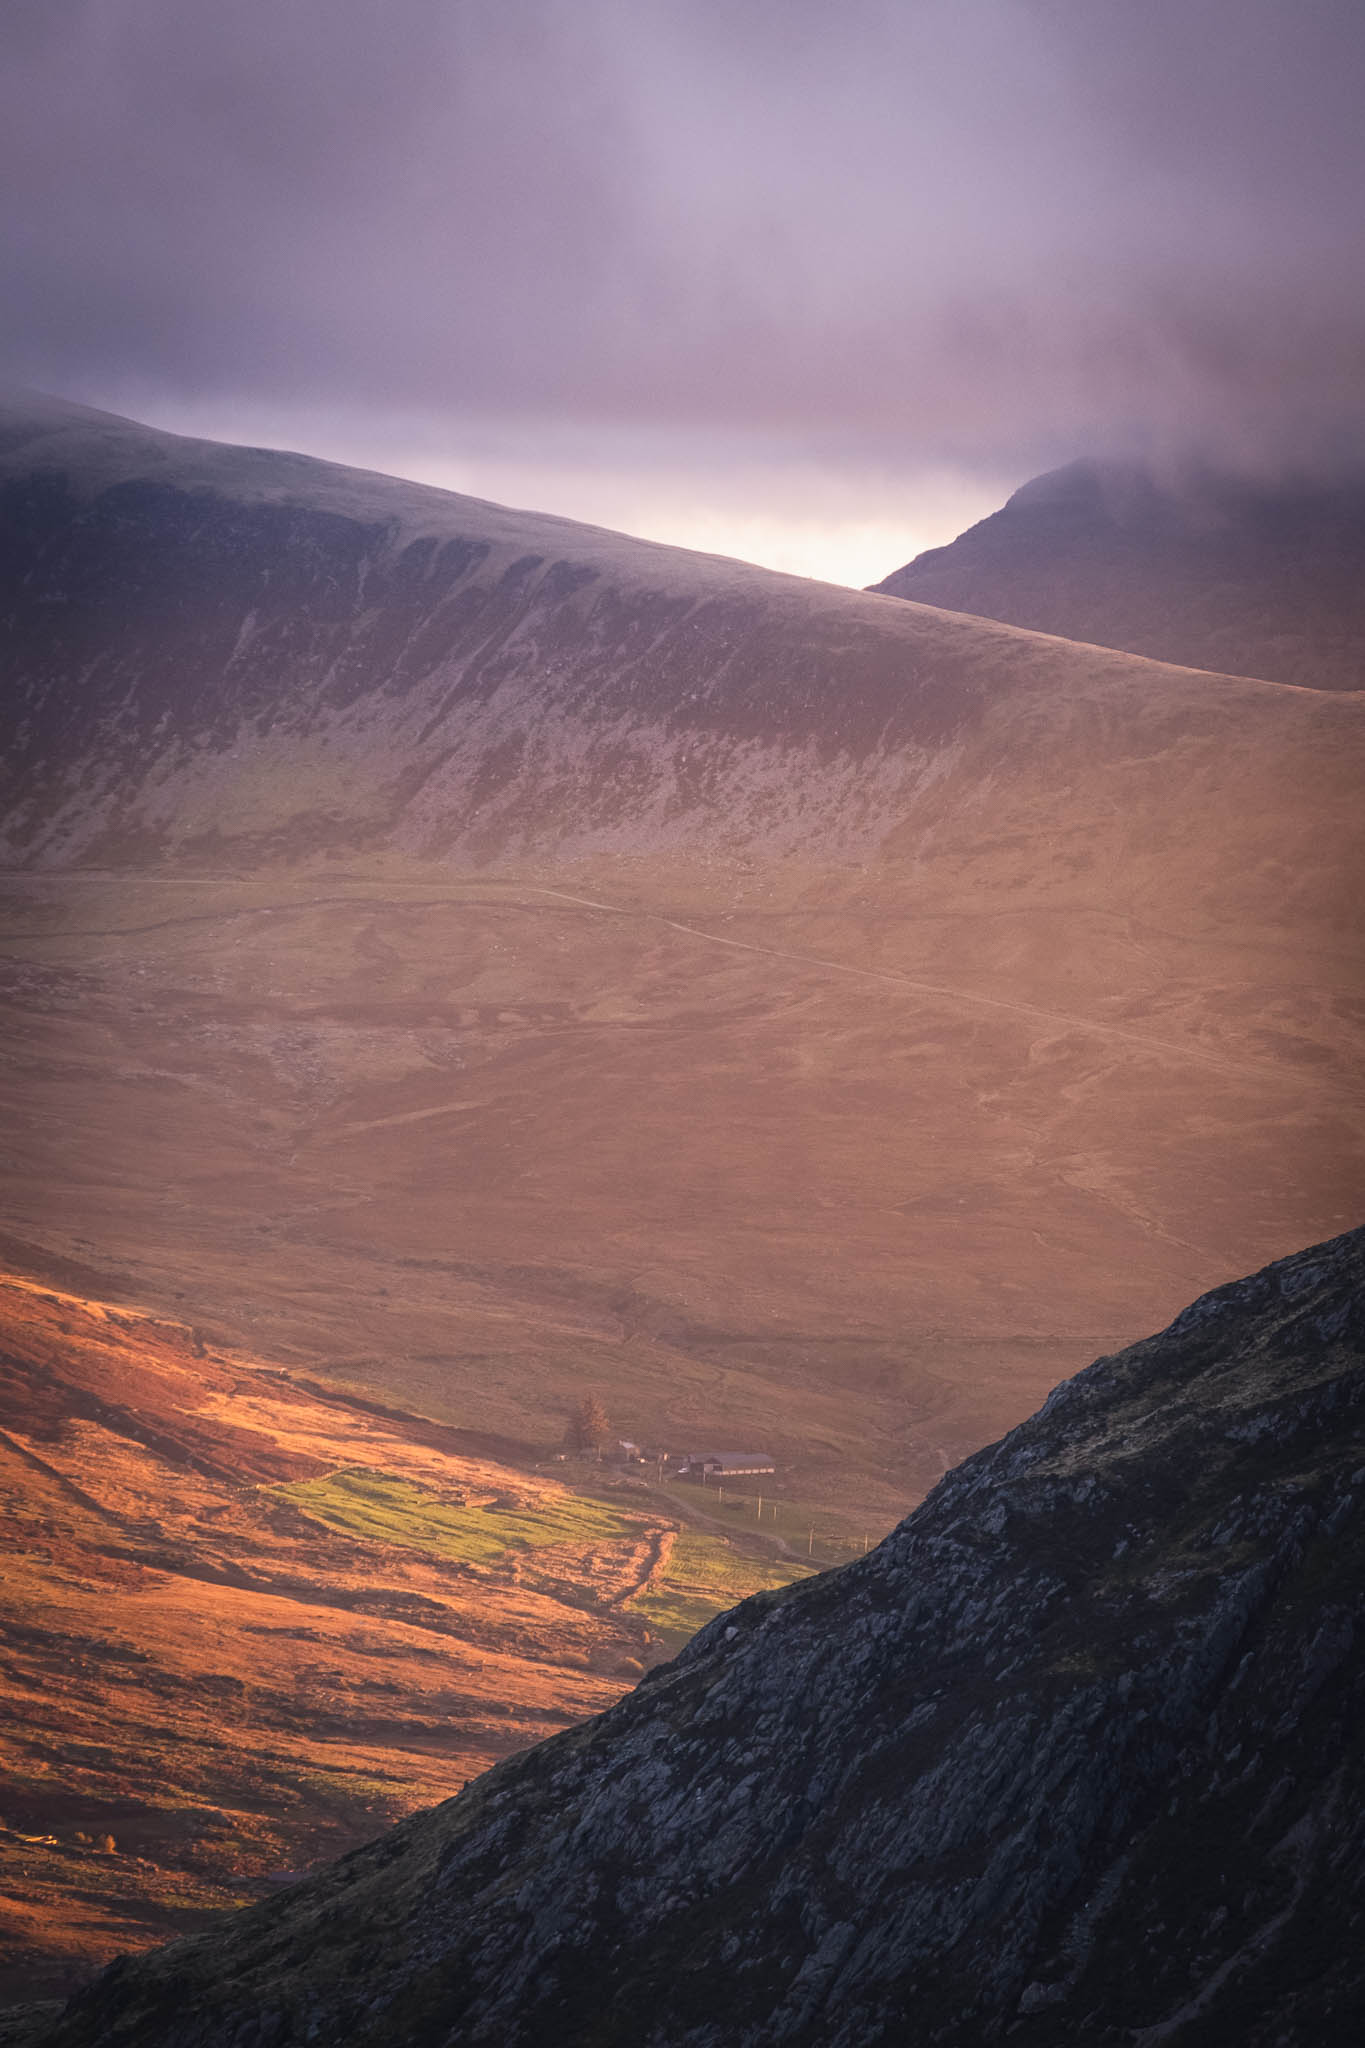 My favourite Snowdonia Landscape Photograph of the Trip